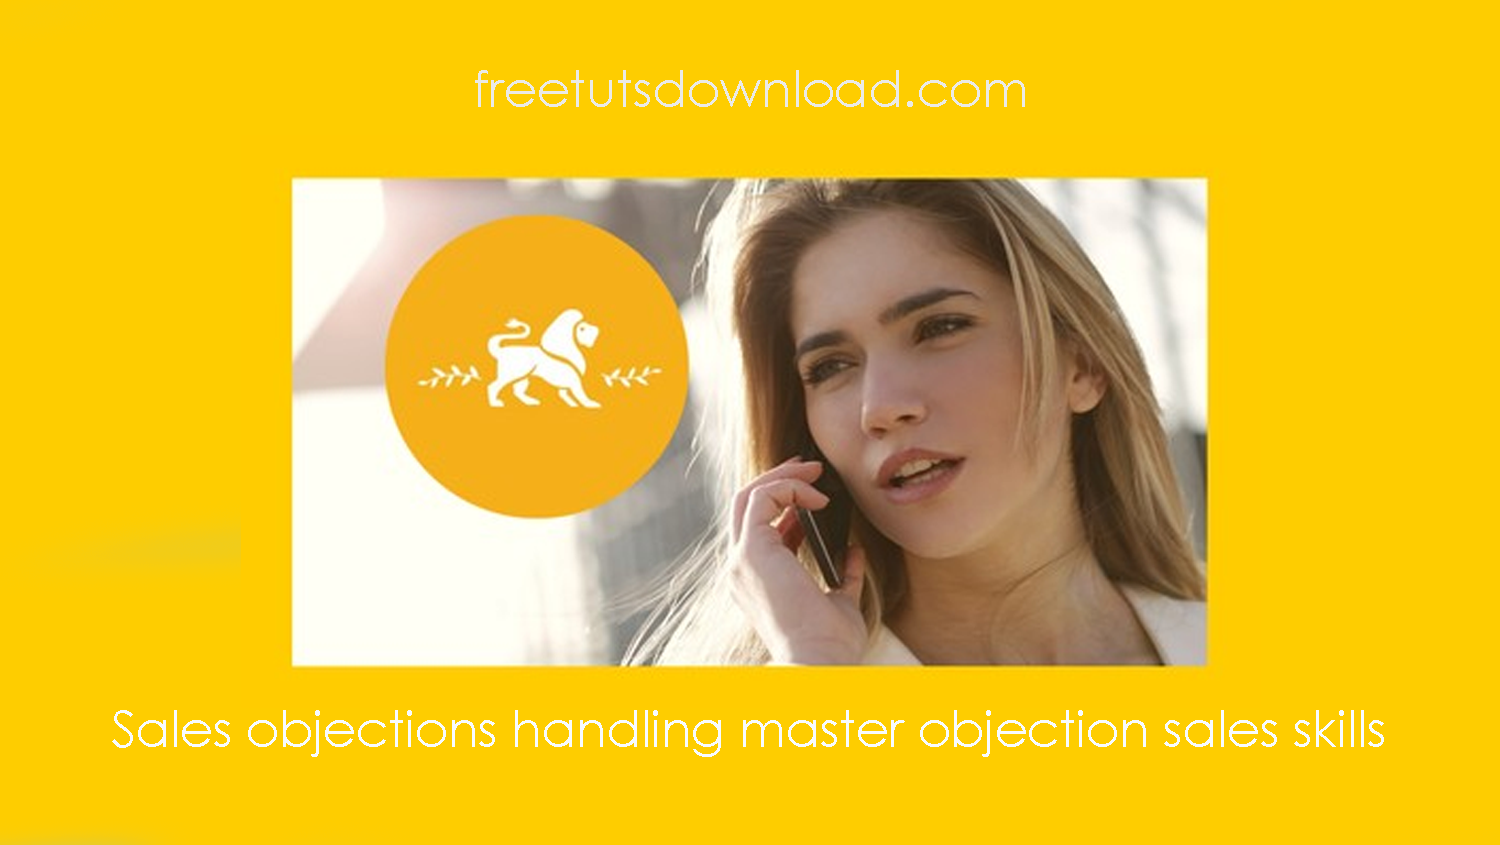 Sales objections handling master objection sales skills Free Download